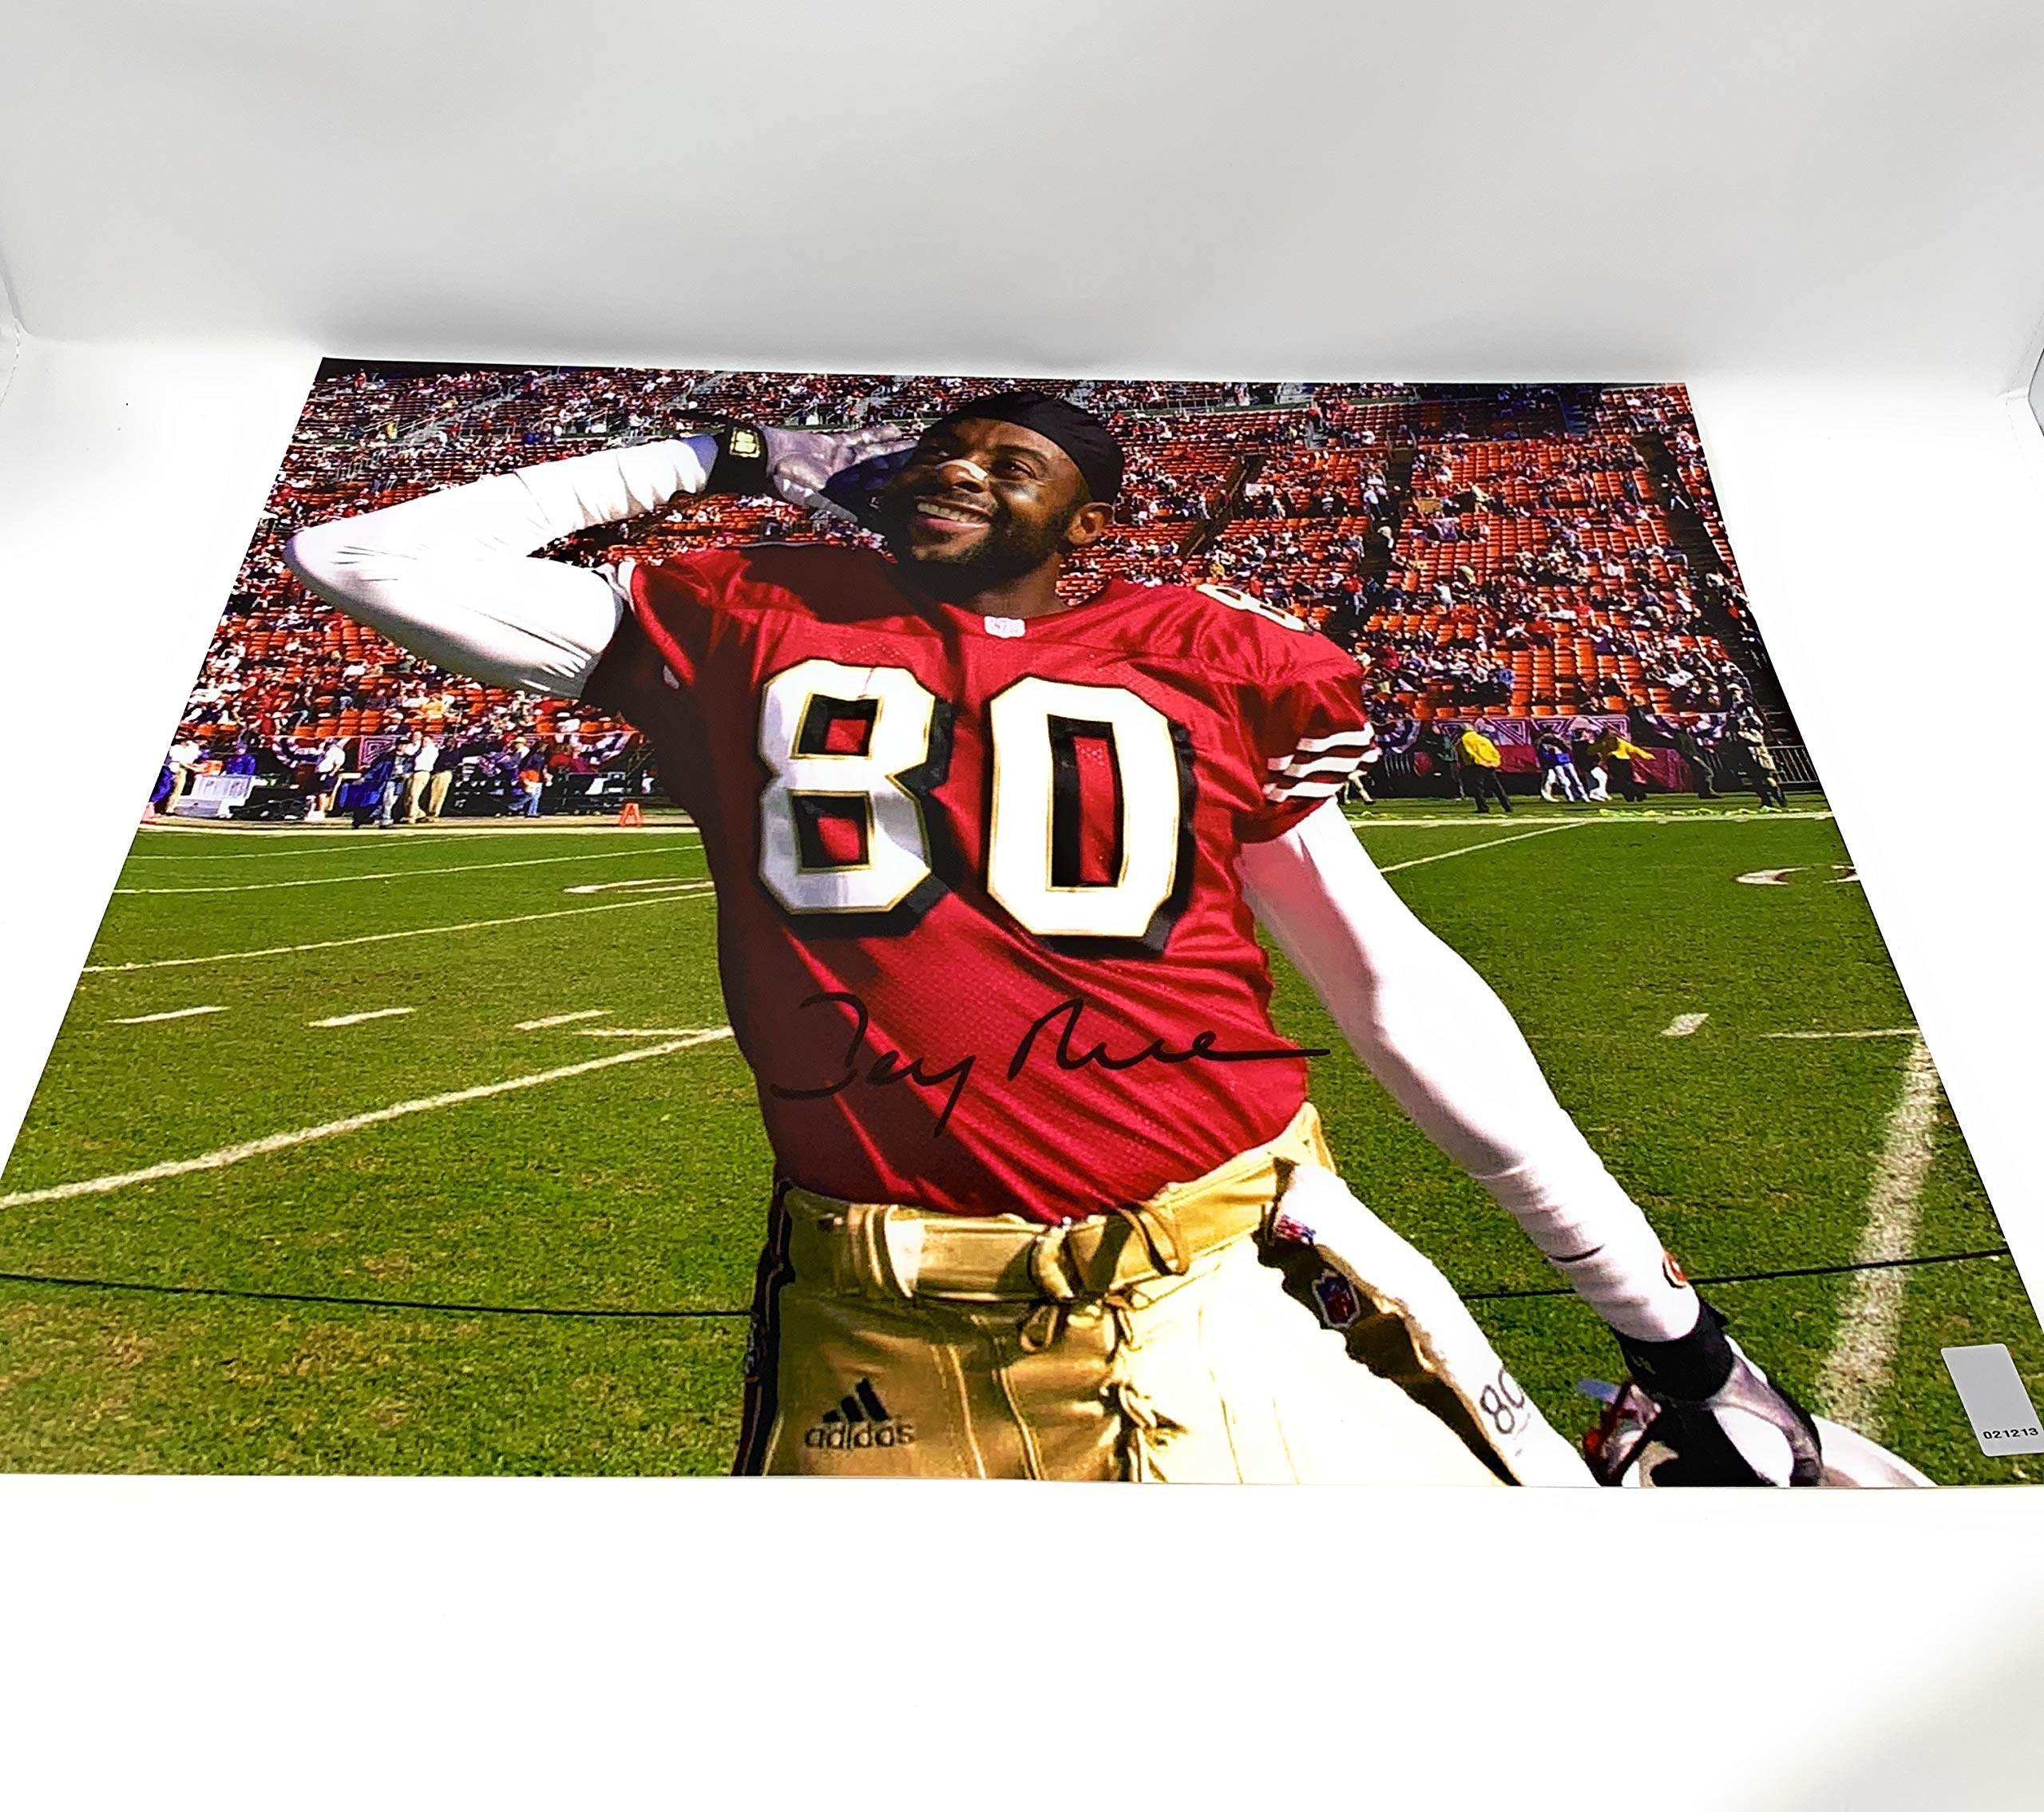 Jerry Rice San Francisco 49ers Signed Autograph 16x20 Photo Photograph Jerry Rice GTSM Player Hologram